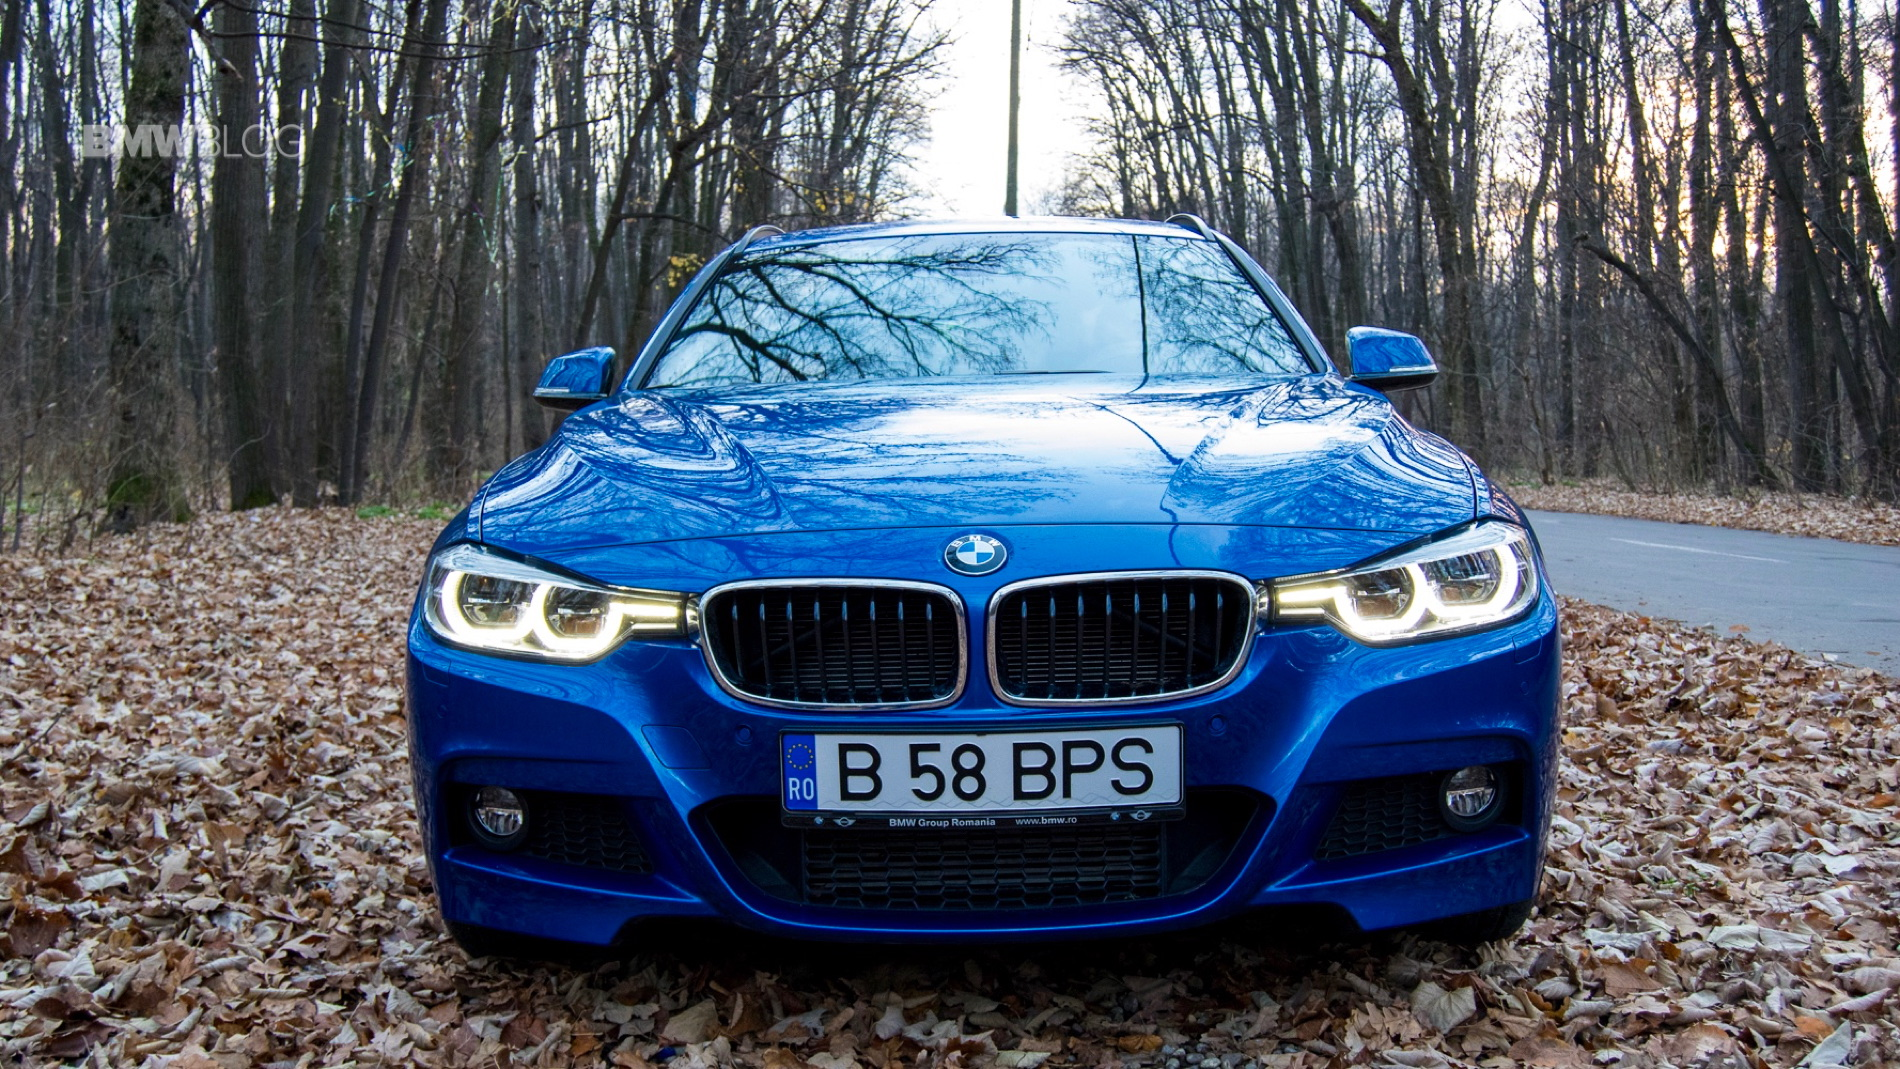 2015 BMW 320d xDrive Touring test drive 67